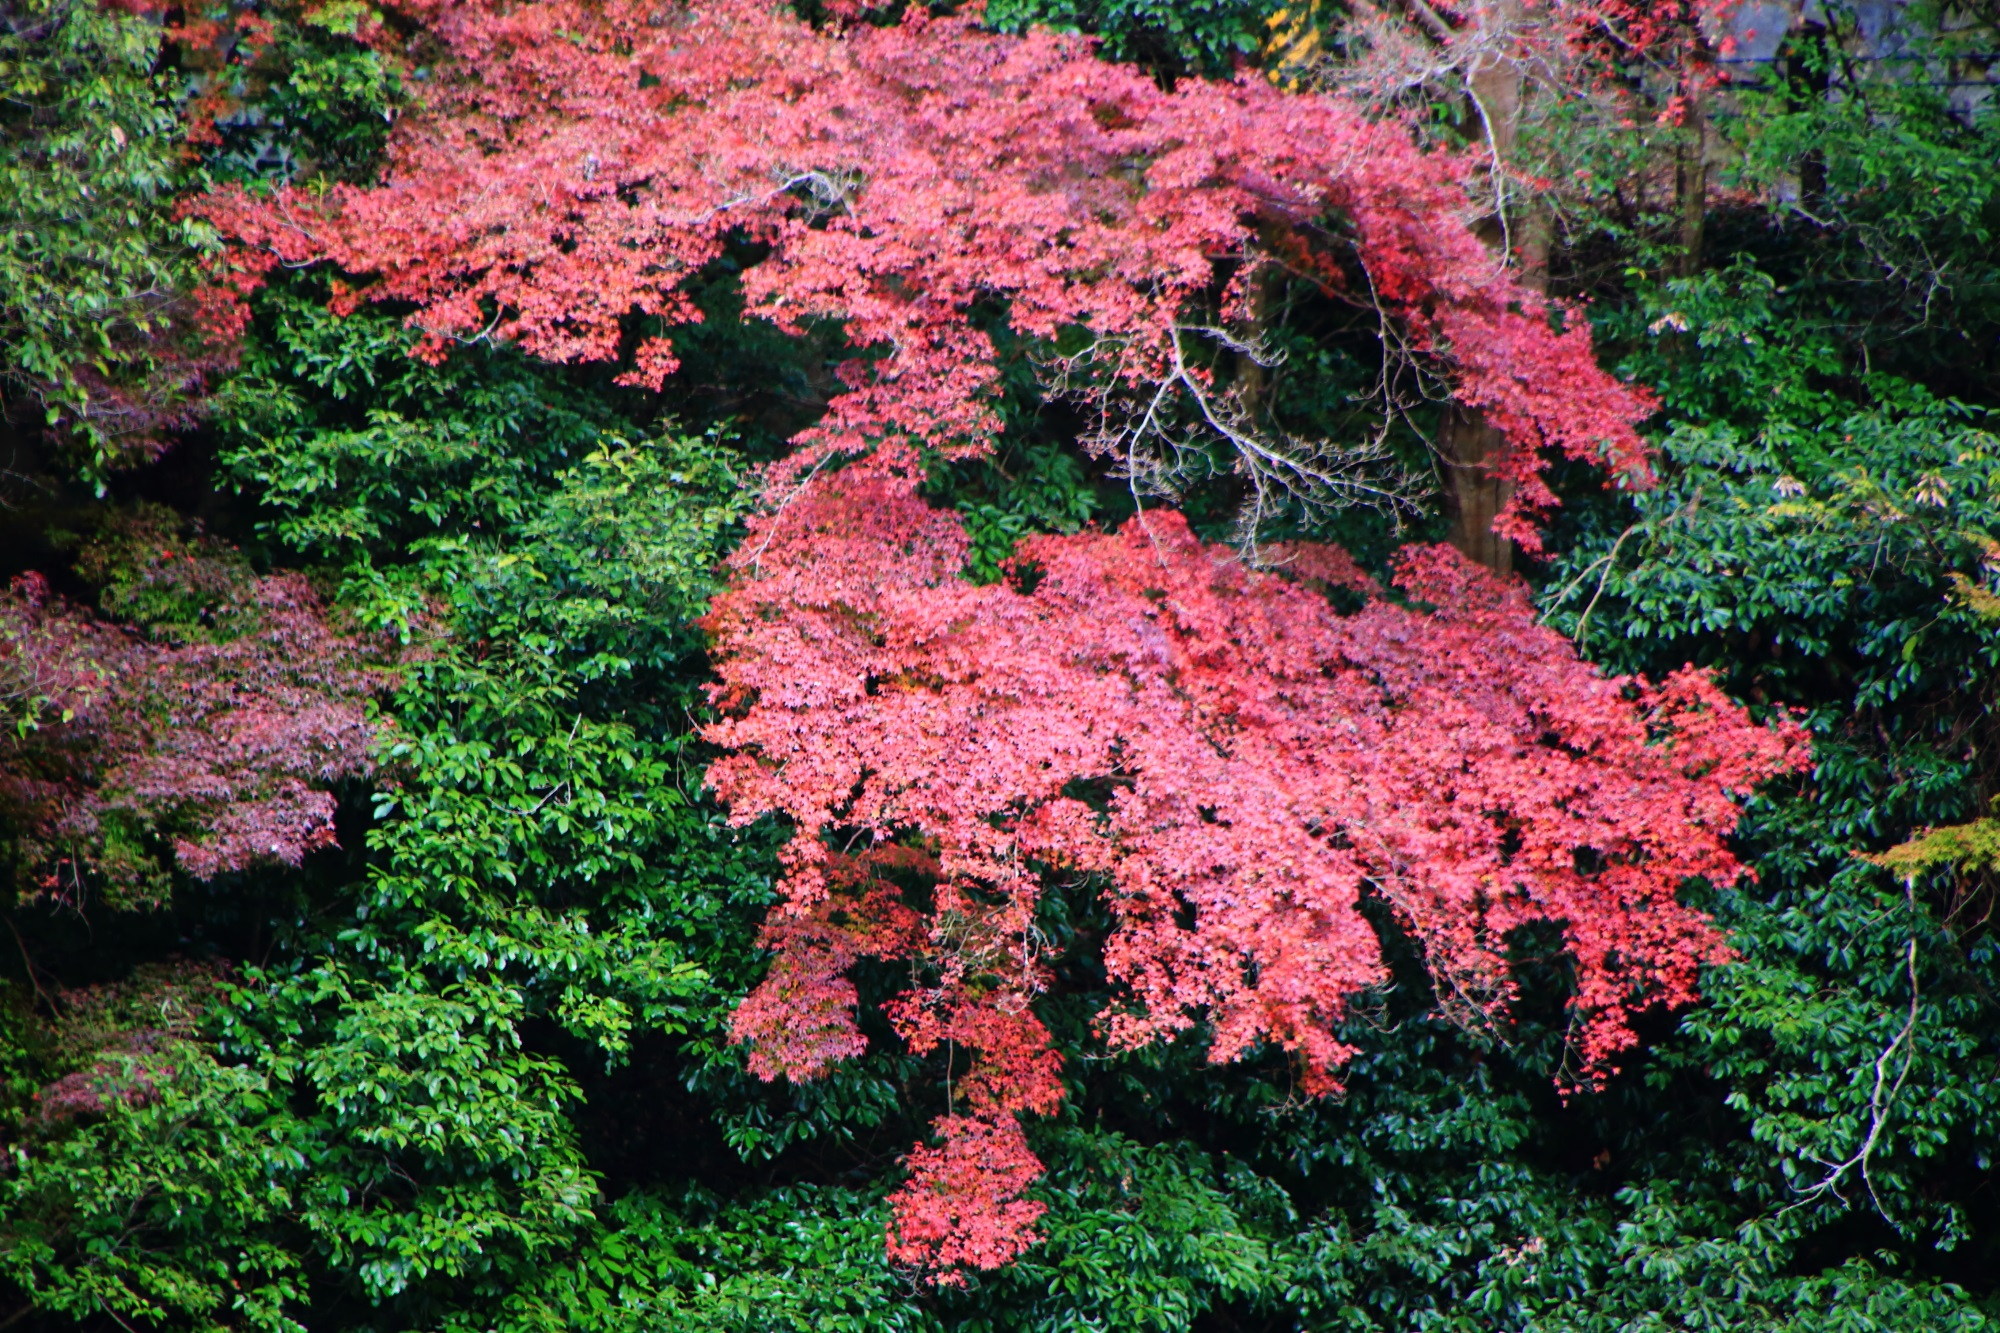 Kyoto Uji-Gwa River colored leaves 宇治川 紅葉 見ごろ 秋 12月